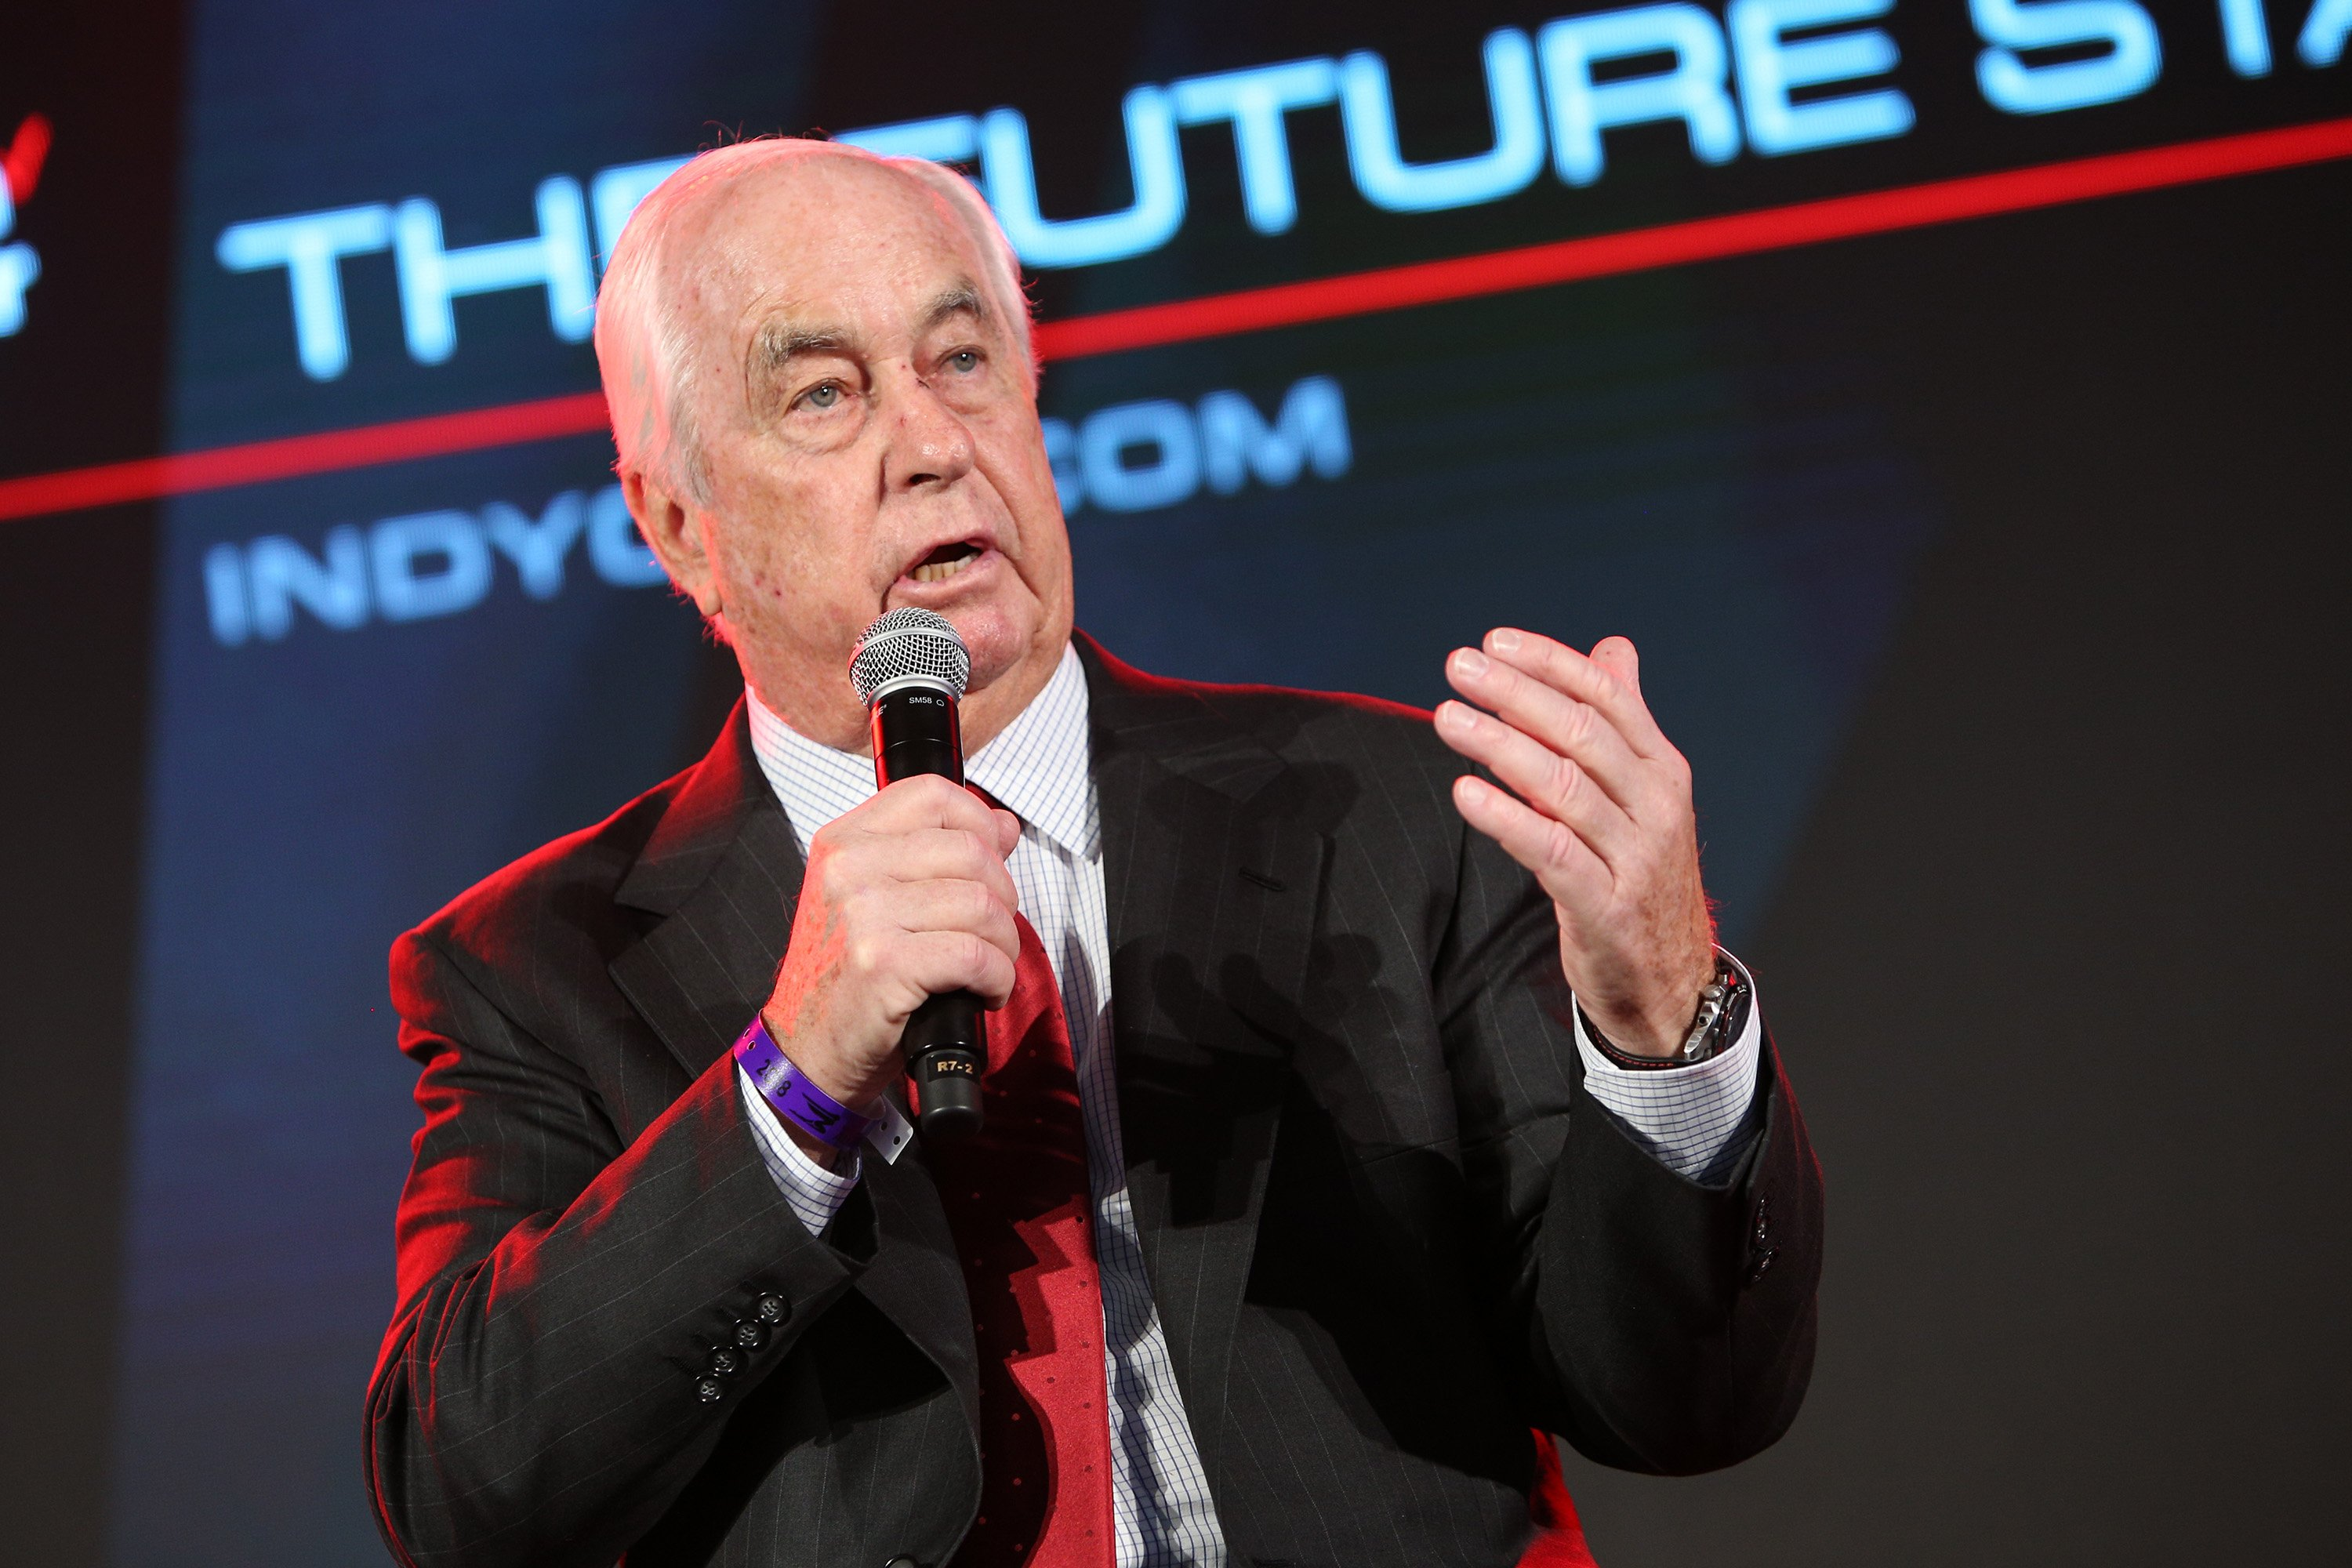 Roger Penske at the 2018 Indycar launch